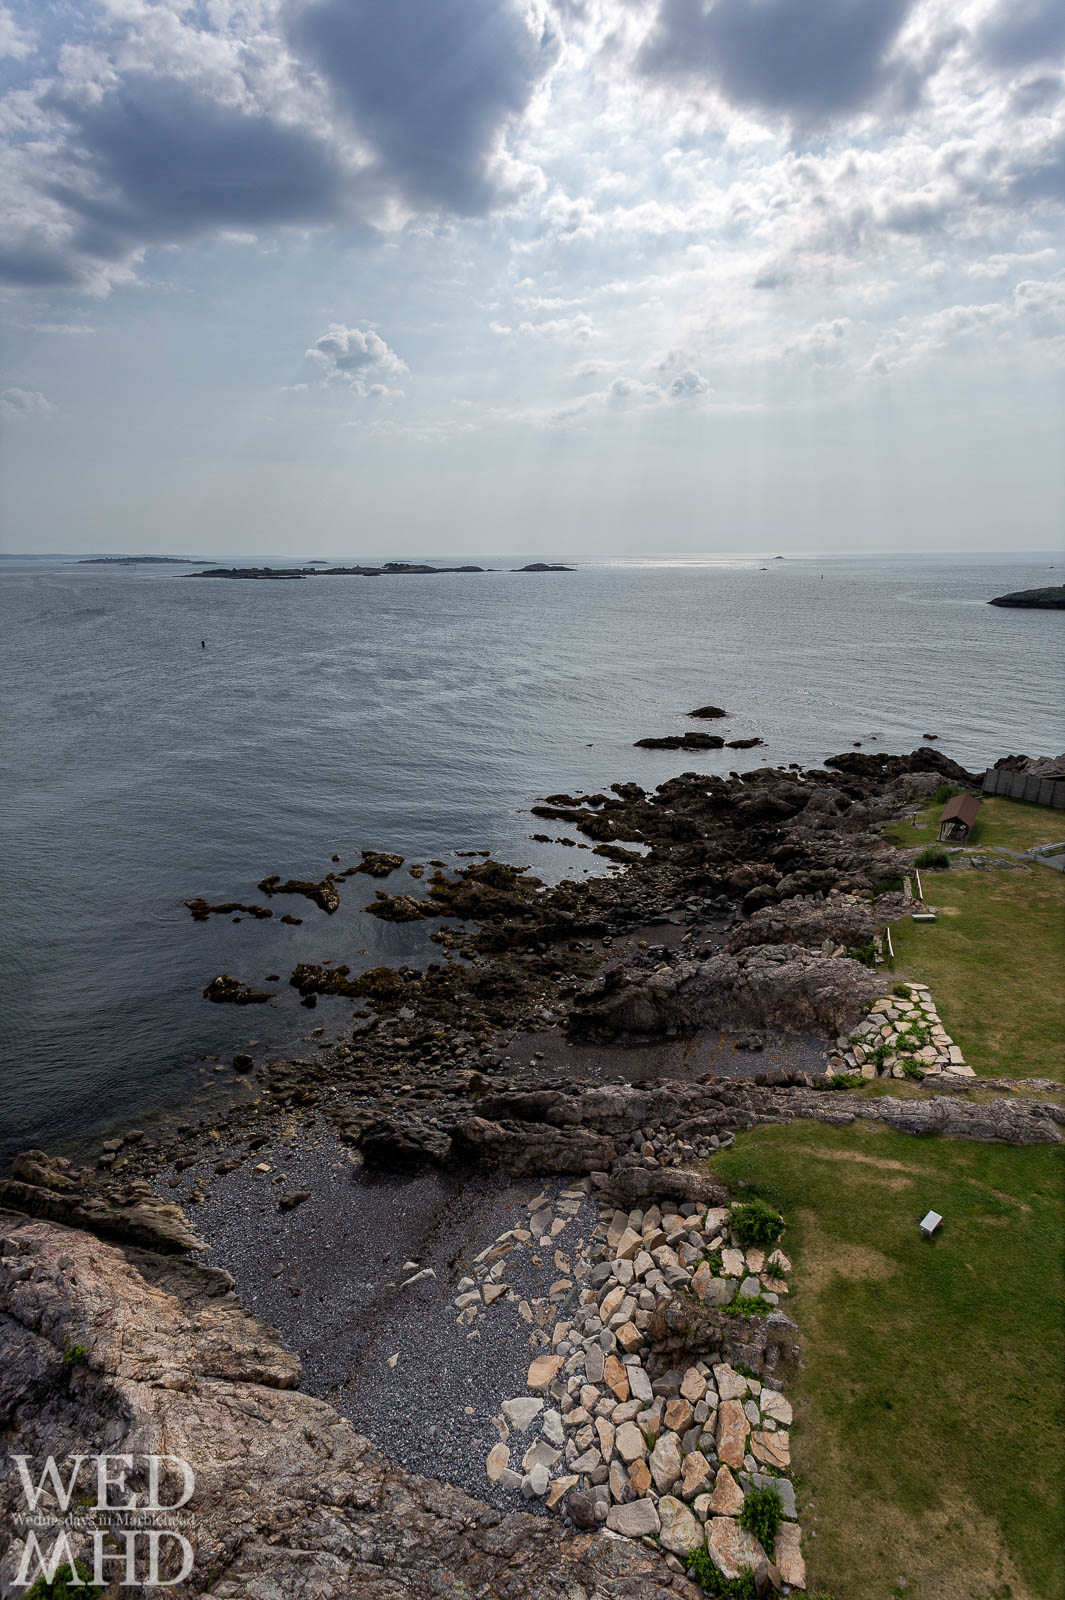 Rays of light shine over Childrens Island as seen from atop Marblehead Light